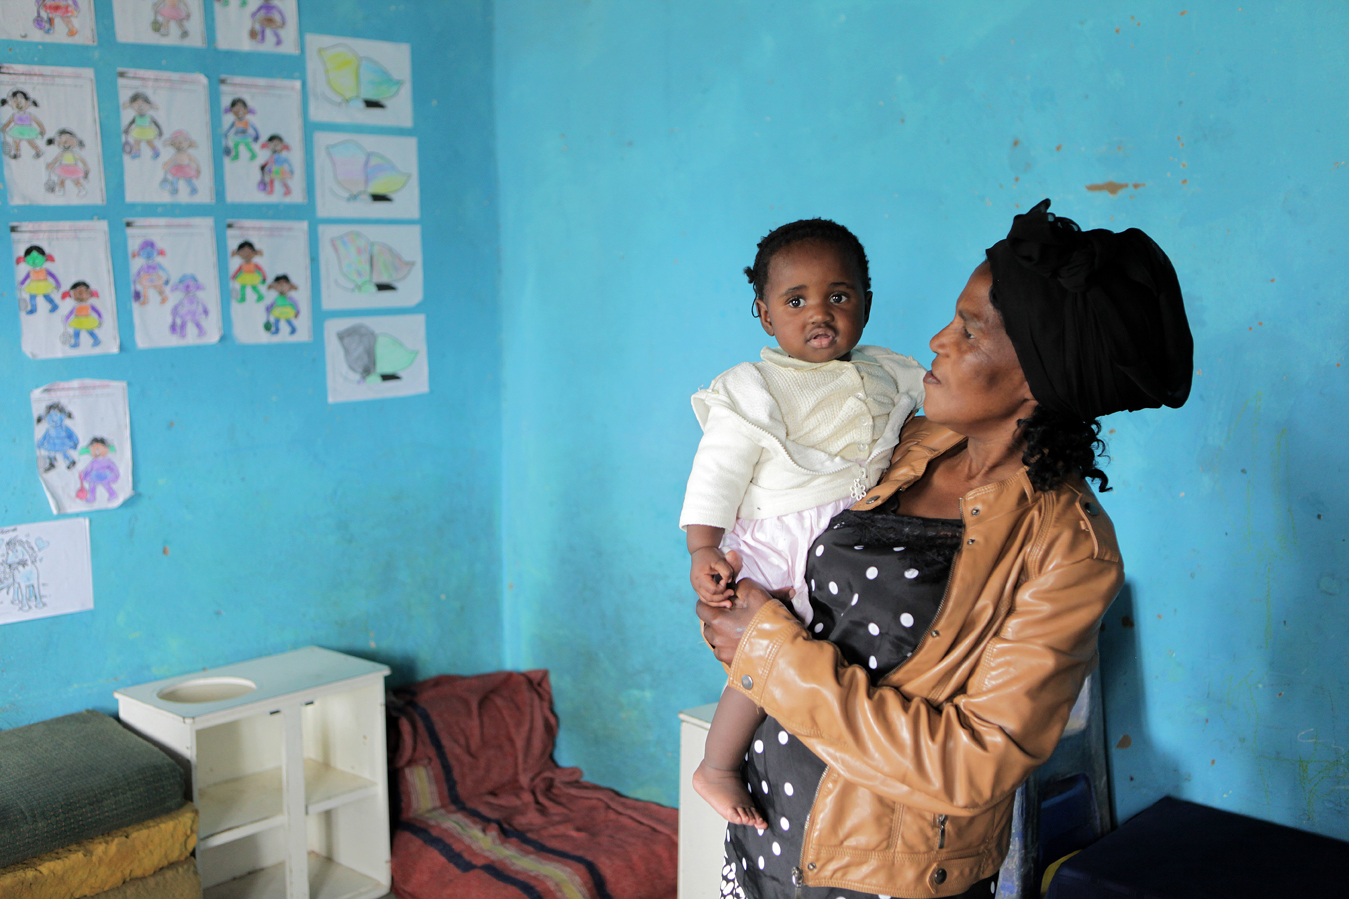 Faith Nkize, Director of the Siyazama Crèche in Hammarsdale, in the eThekwini district, with 9-month-old Snqobile. She first opened as a crèche in 1994, responding to the need for children to be cared for while their parents were at work. Faith is also a foster parent for six young children who have been orphaned by HIV/AIDS. She cares for these Orphaned and Vulnerable Children (OVC) as her own, responding to requests from caregivers and relatives to care for the children who were already attending her crèche. As South Africa's province with the highest HIV/AIDS prevalence, above 25%, Save the Children recognised the need to support caregivers to meet the physical, social and emotional needs of 200 orphaned and vulnerable children who are in 'informal' foster care.